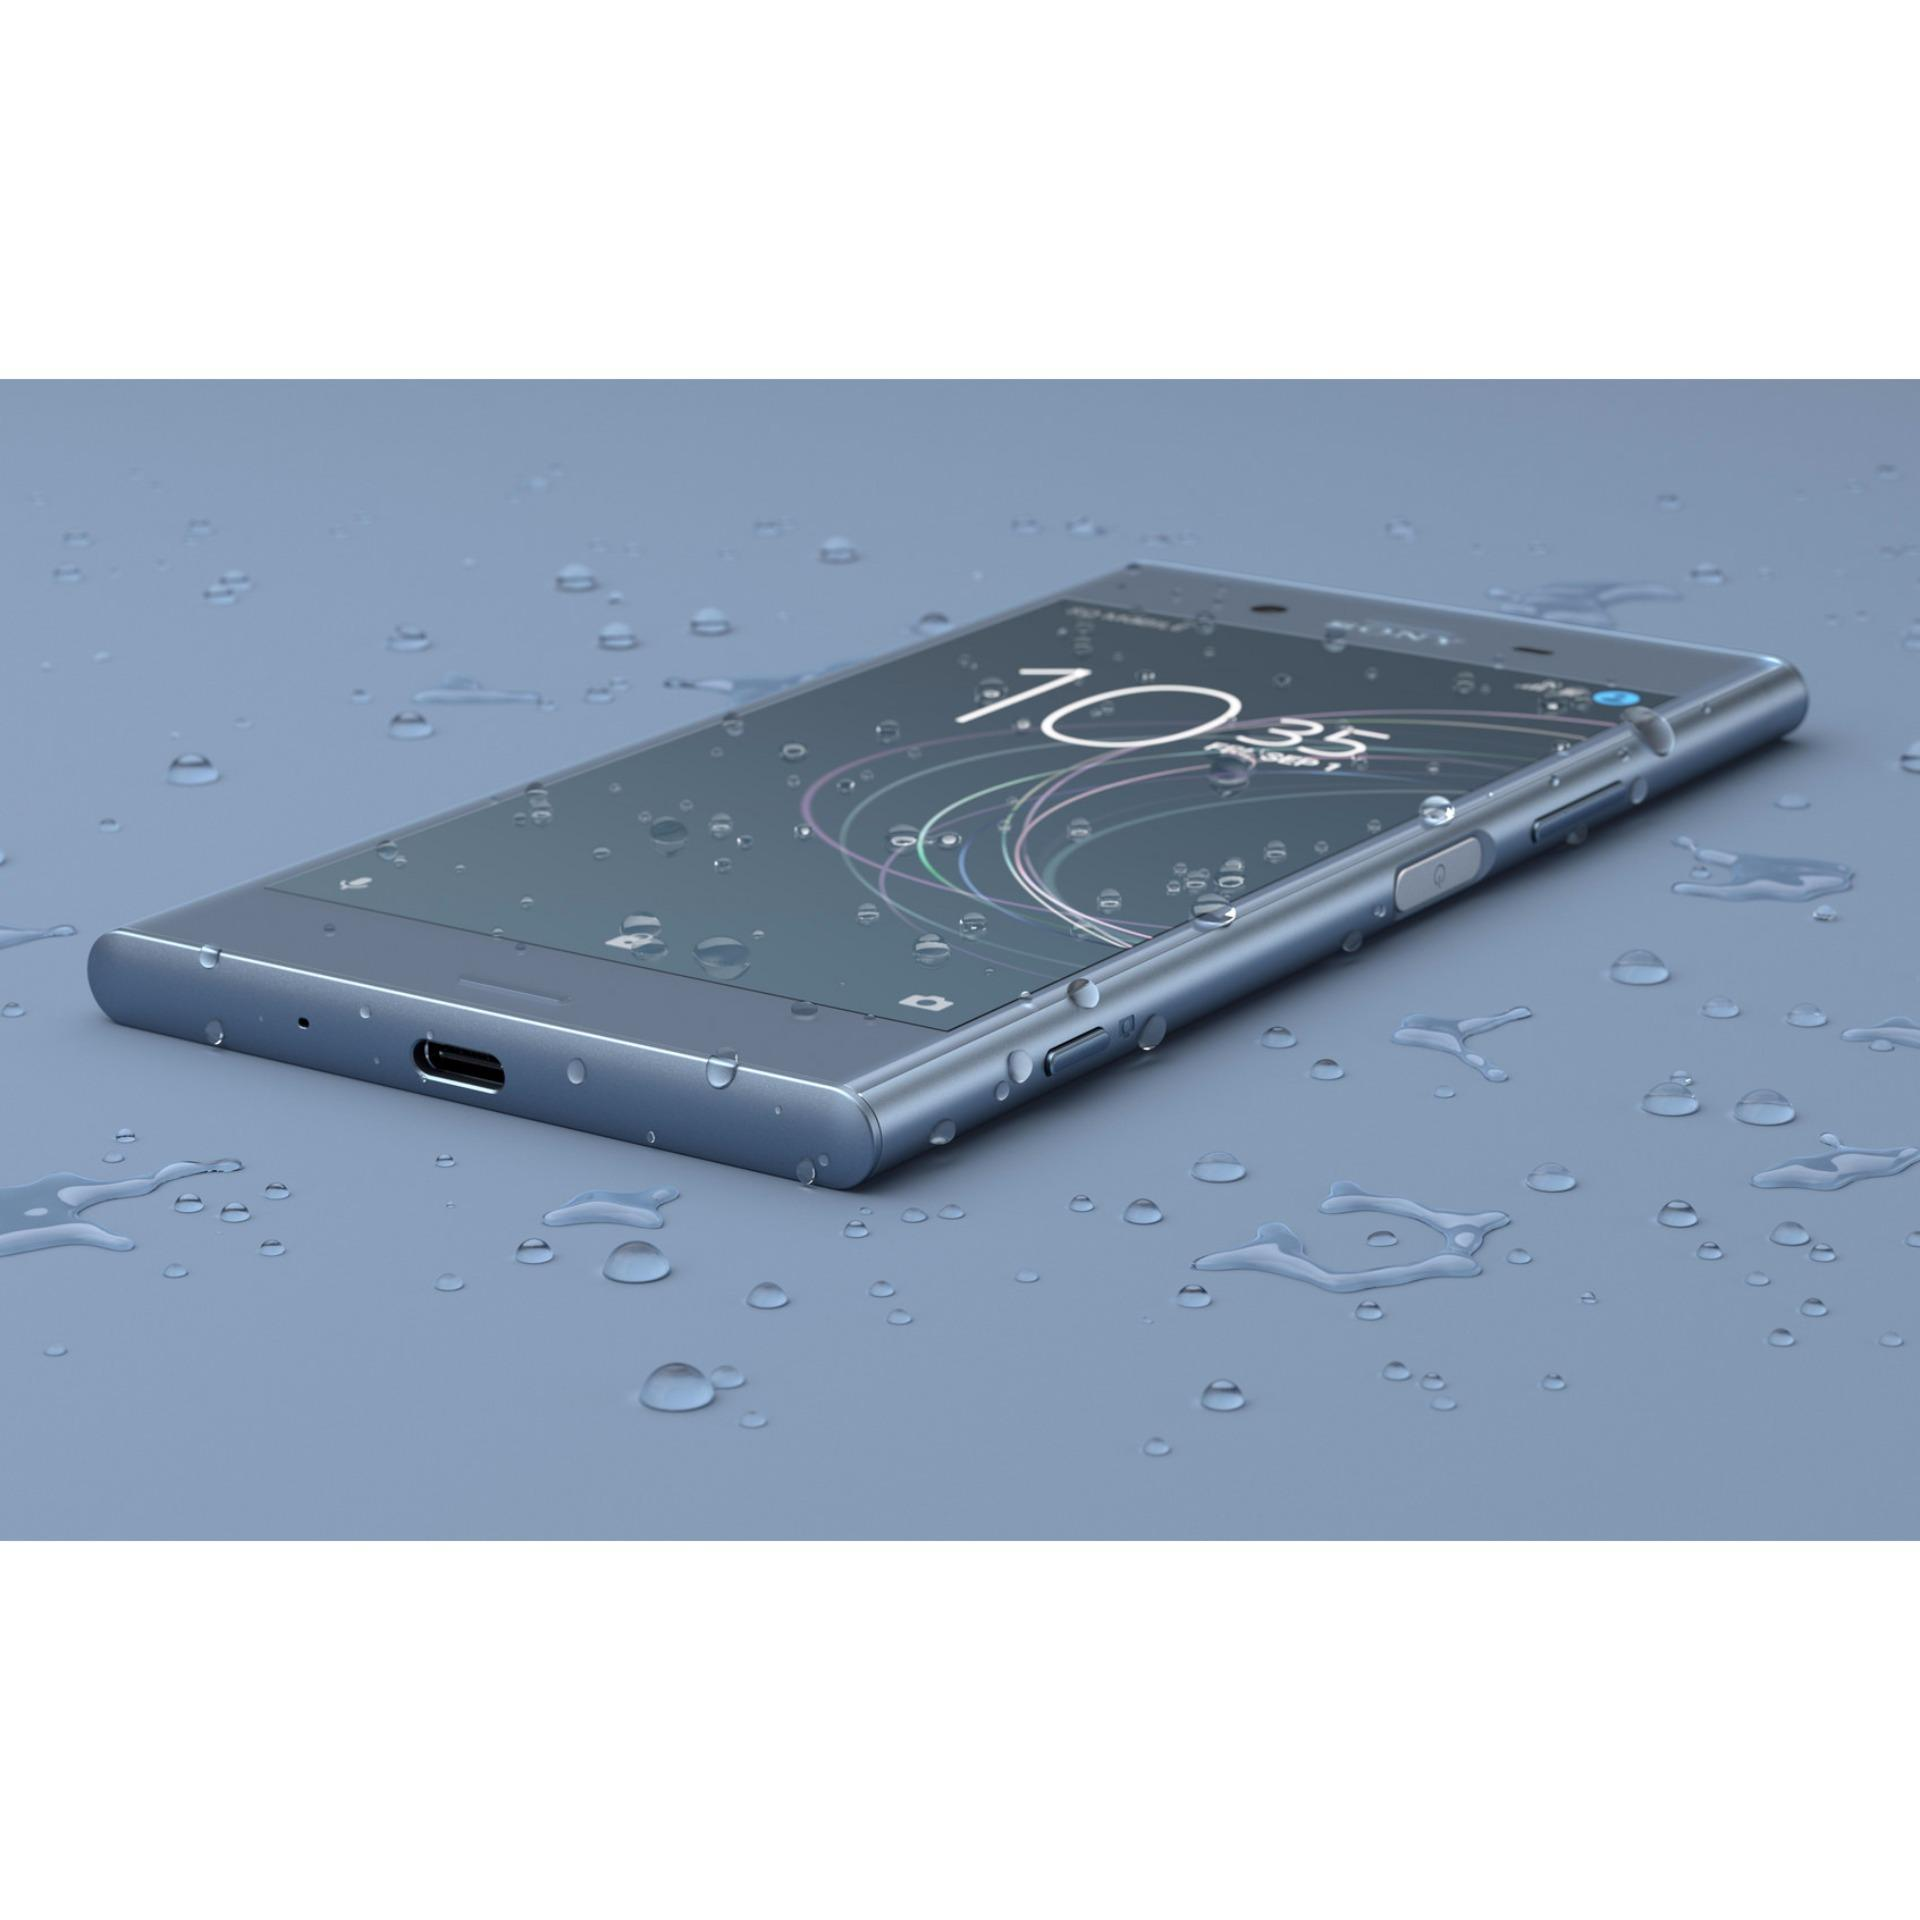 NEW MODEL !! SONY G8342 Xperia XZ1 4GB RAM/64GB - Moonlit Blue